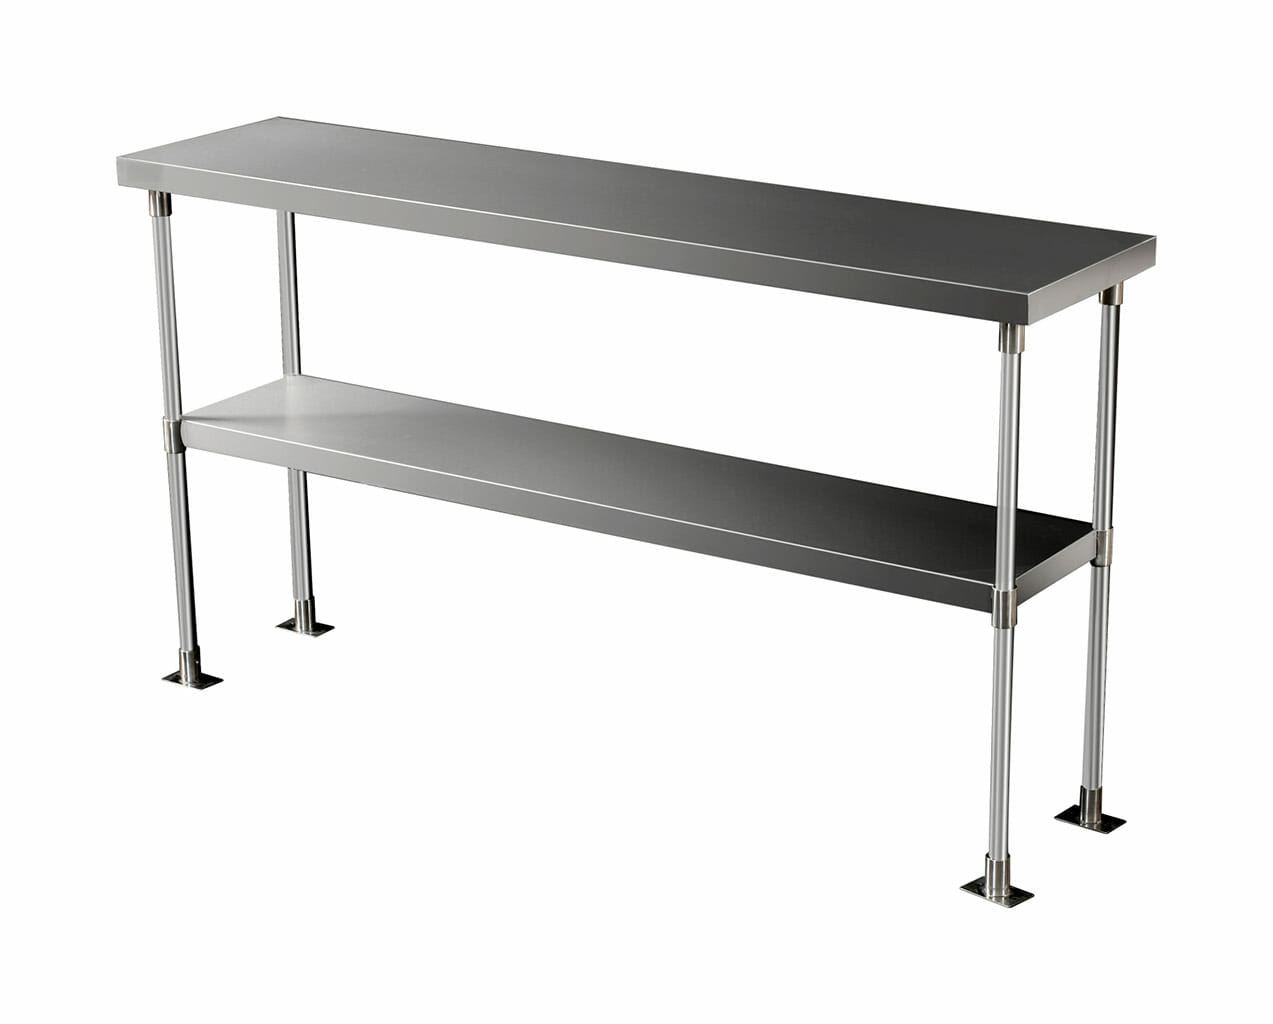 Stainless Steel Over Bench Shelf 2-Tier, 1450 X 350mm